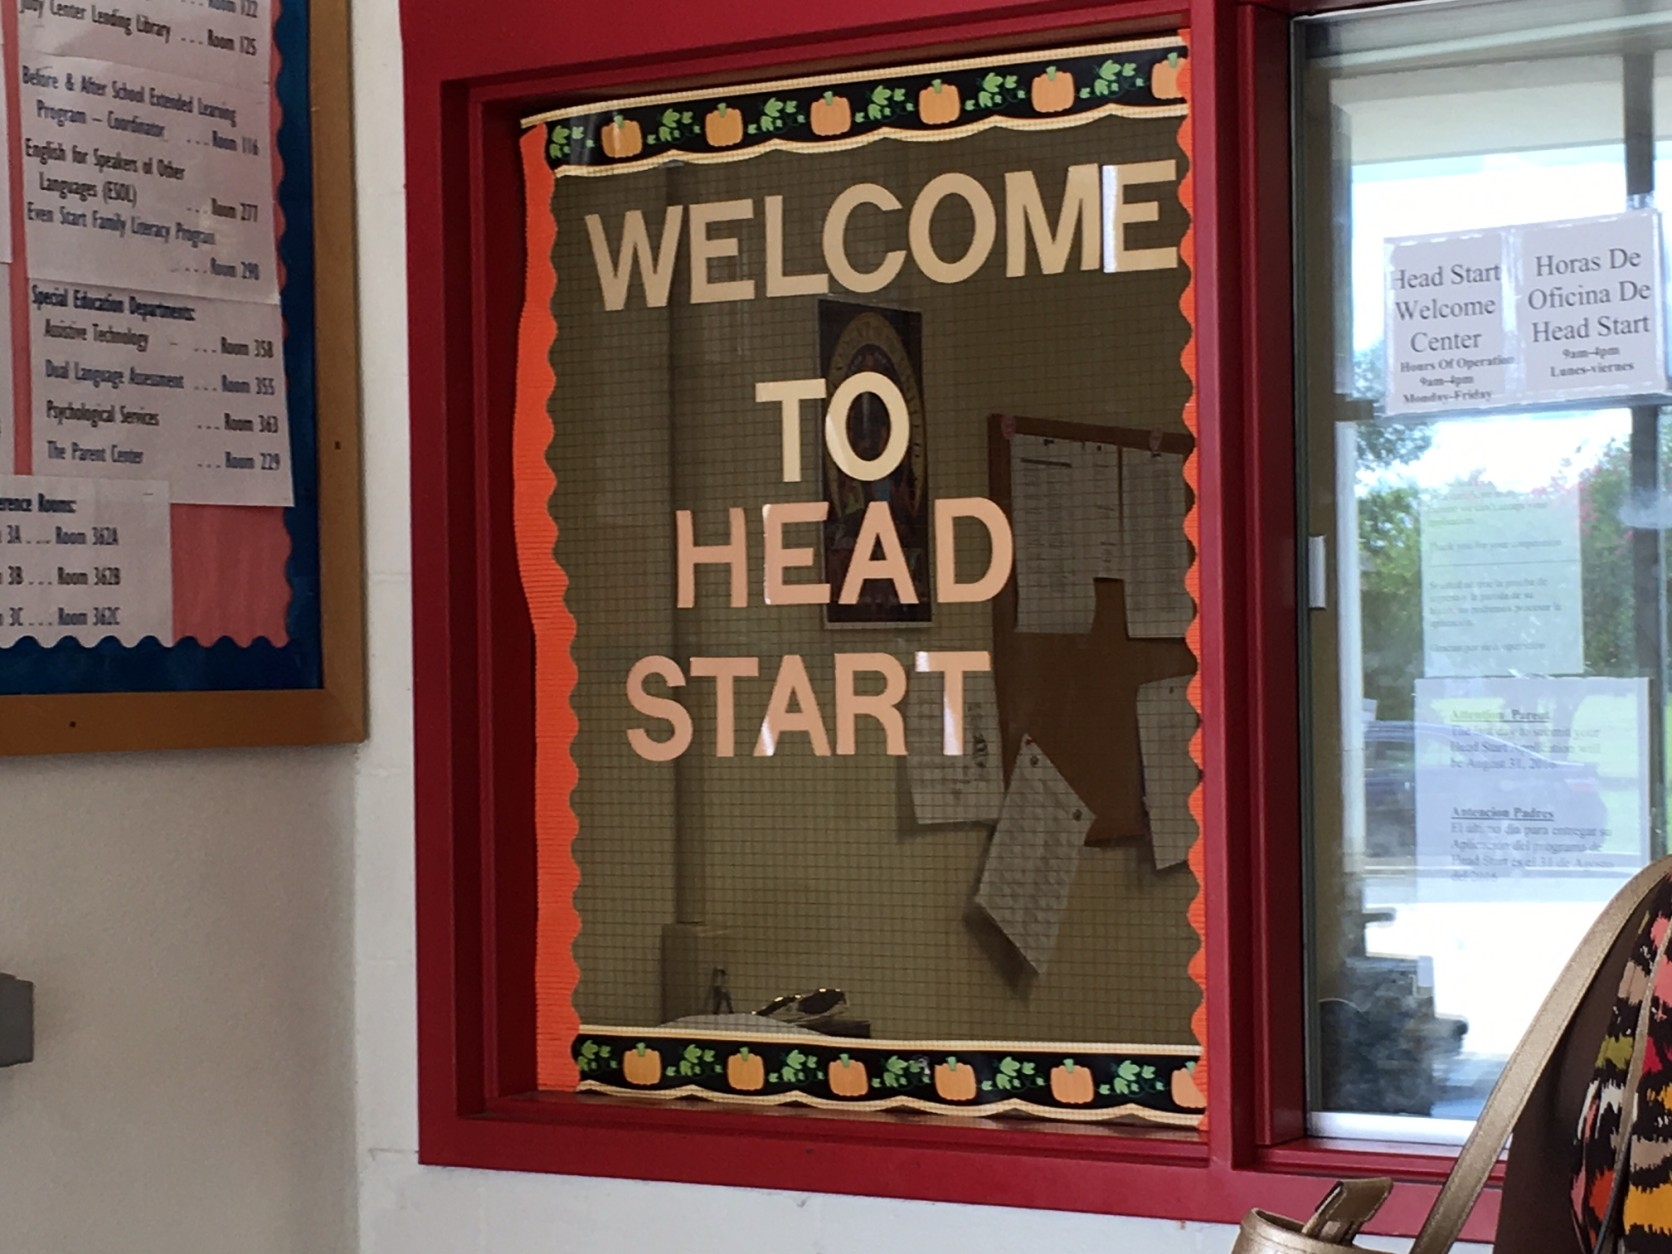 On Wednesday, Aug. 17, 2016, parents were still walking in to the Judy Hoyer Family Learning Center in Adelphi, Md., shown here, in order to sign up their children for Head Start, despite the announcement that federal officials had terminated a $6.3 million grant for the program. (WTOP/Kate Ryan)